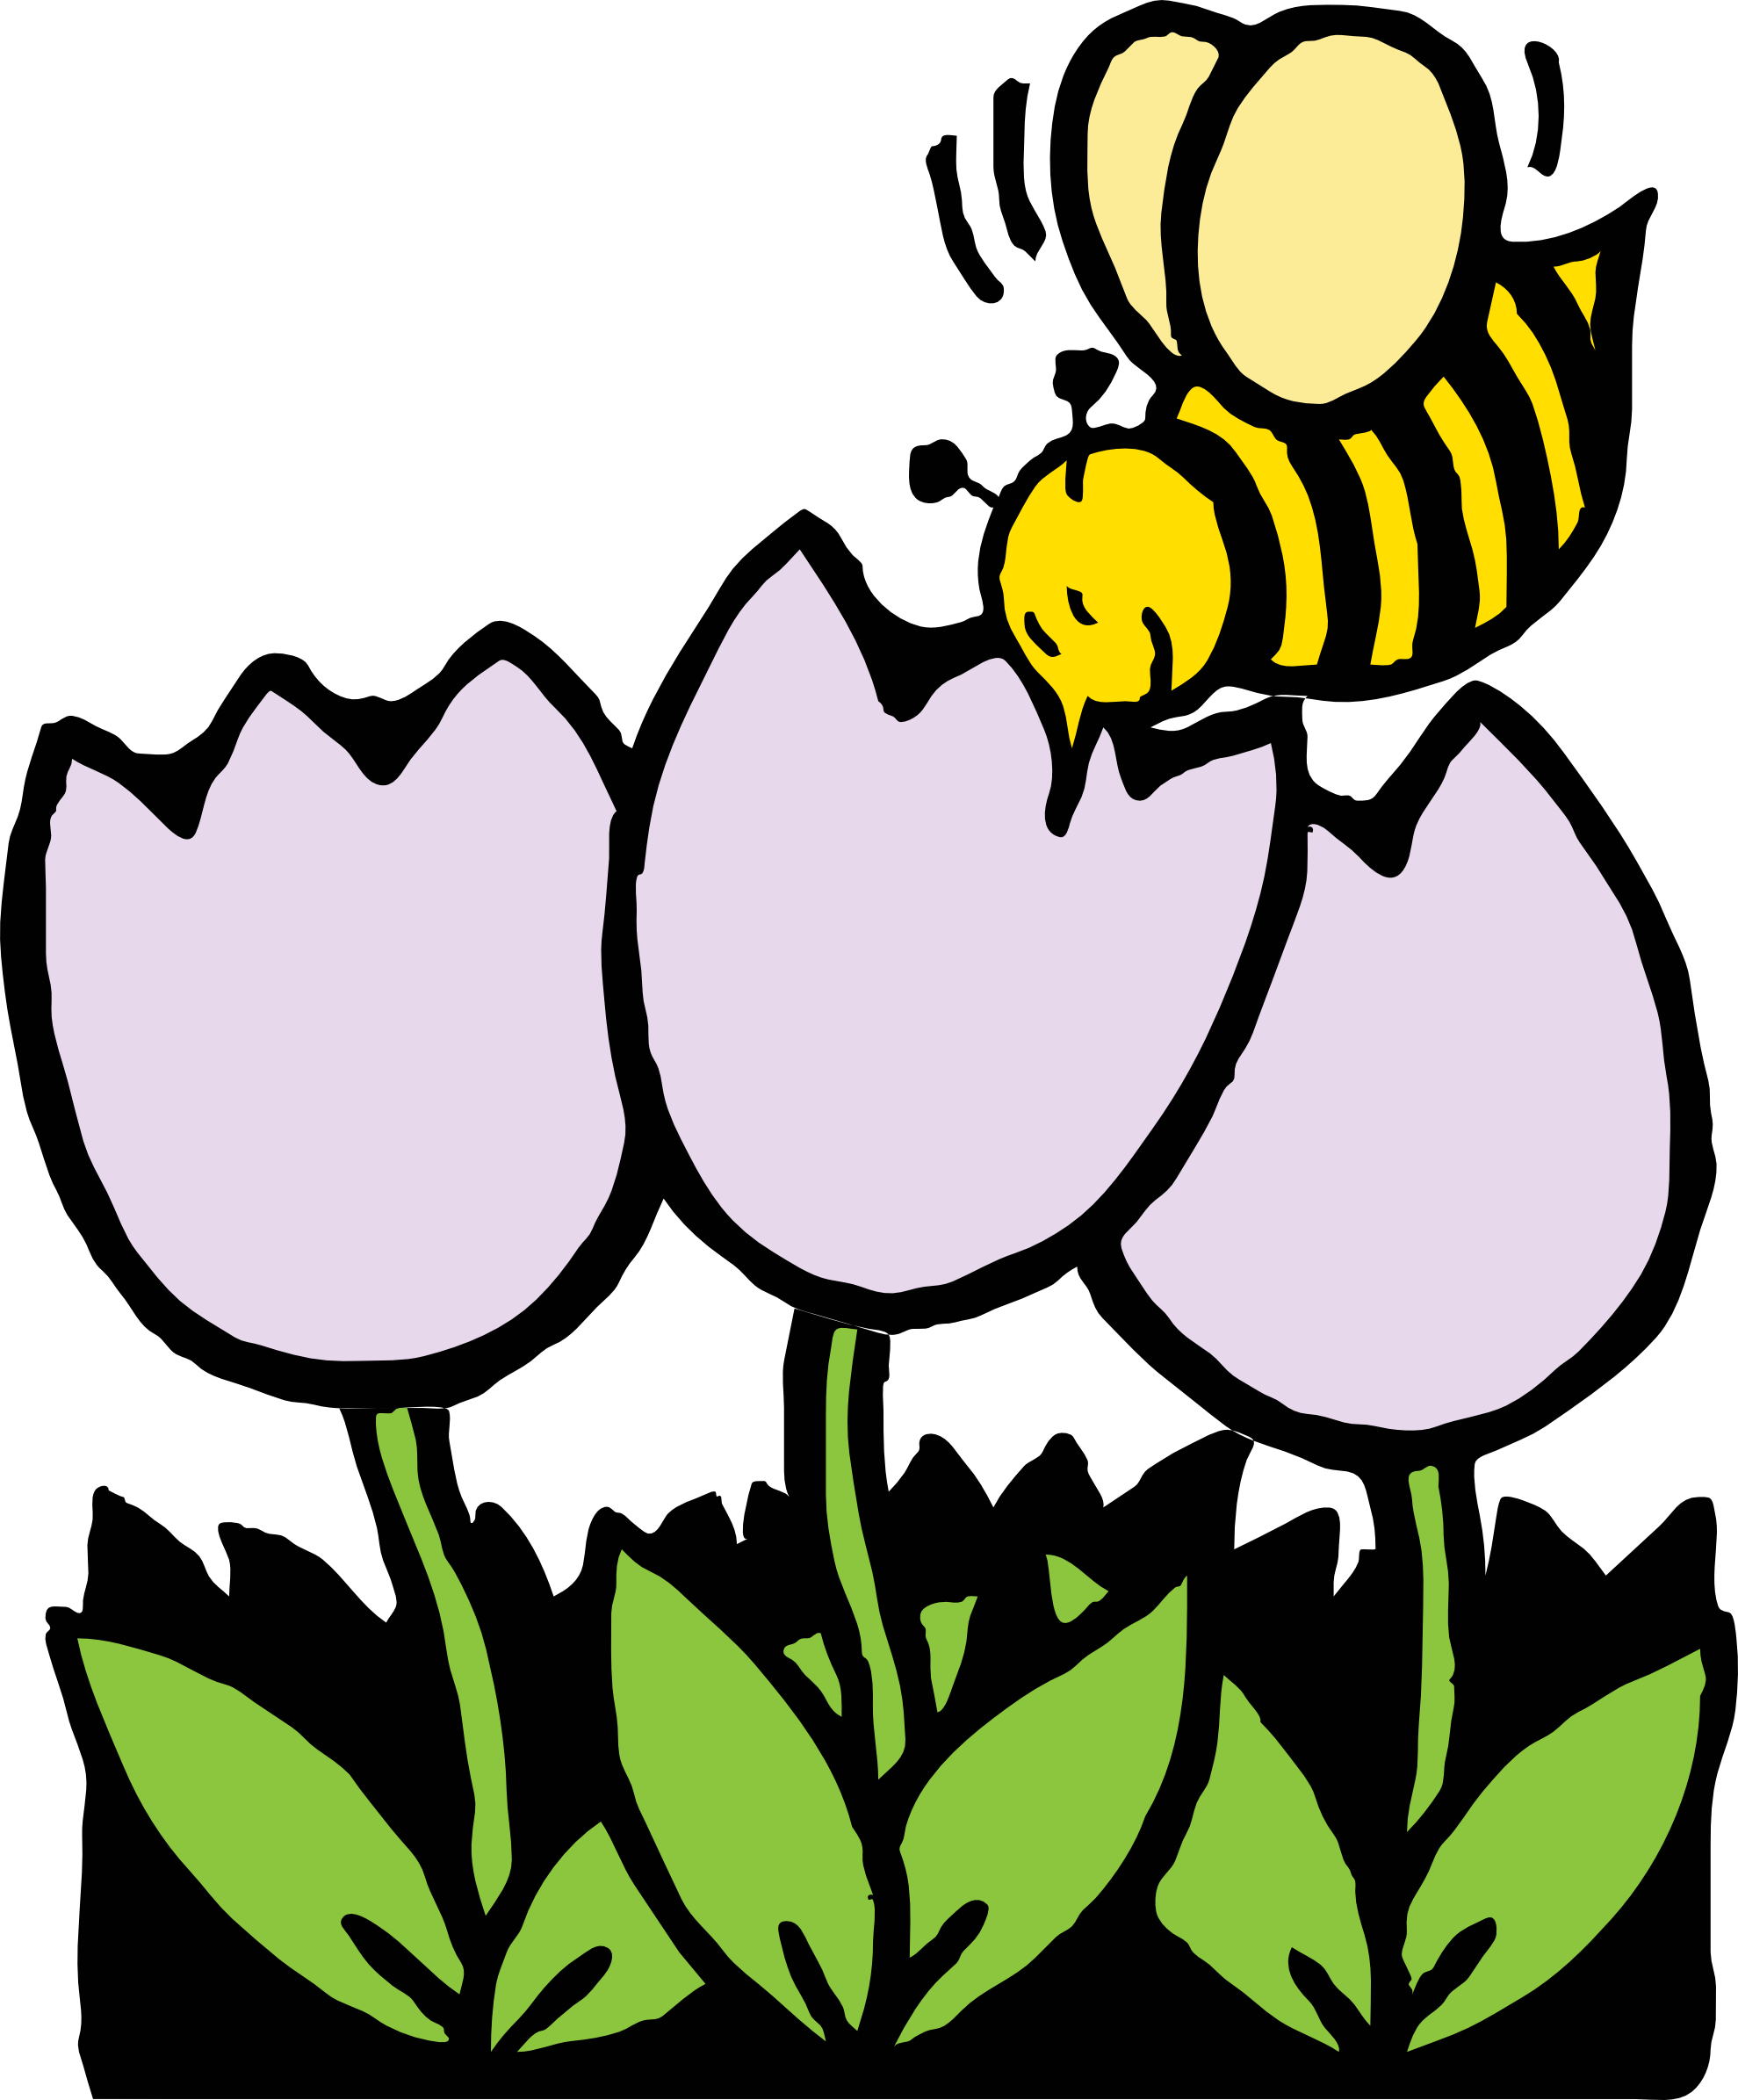 Bee with flower clipart stock Bee And Flower Clipart | Clipart Panda - Free Clipart Images stock